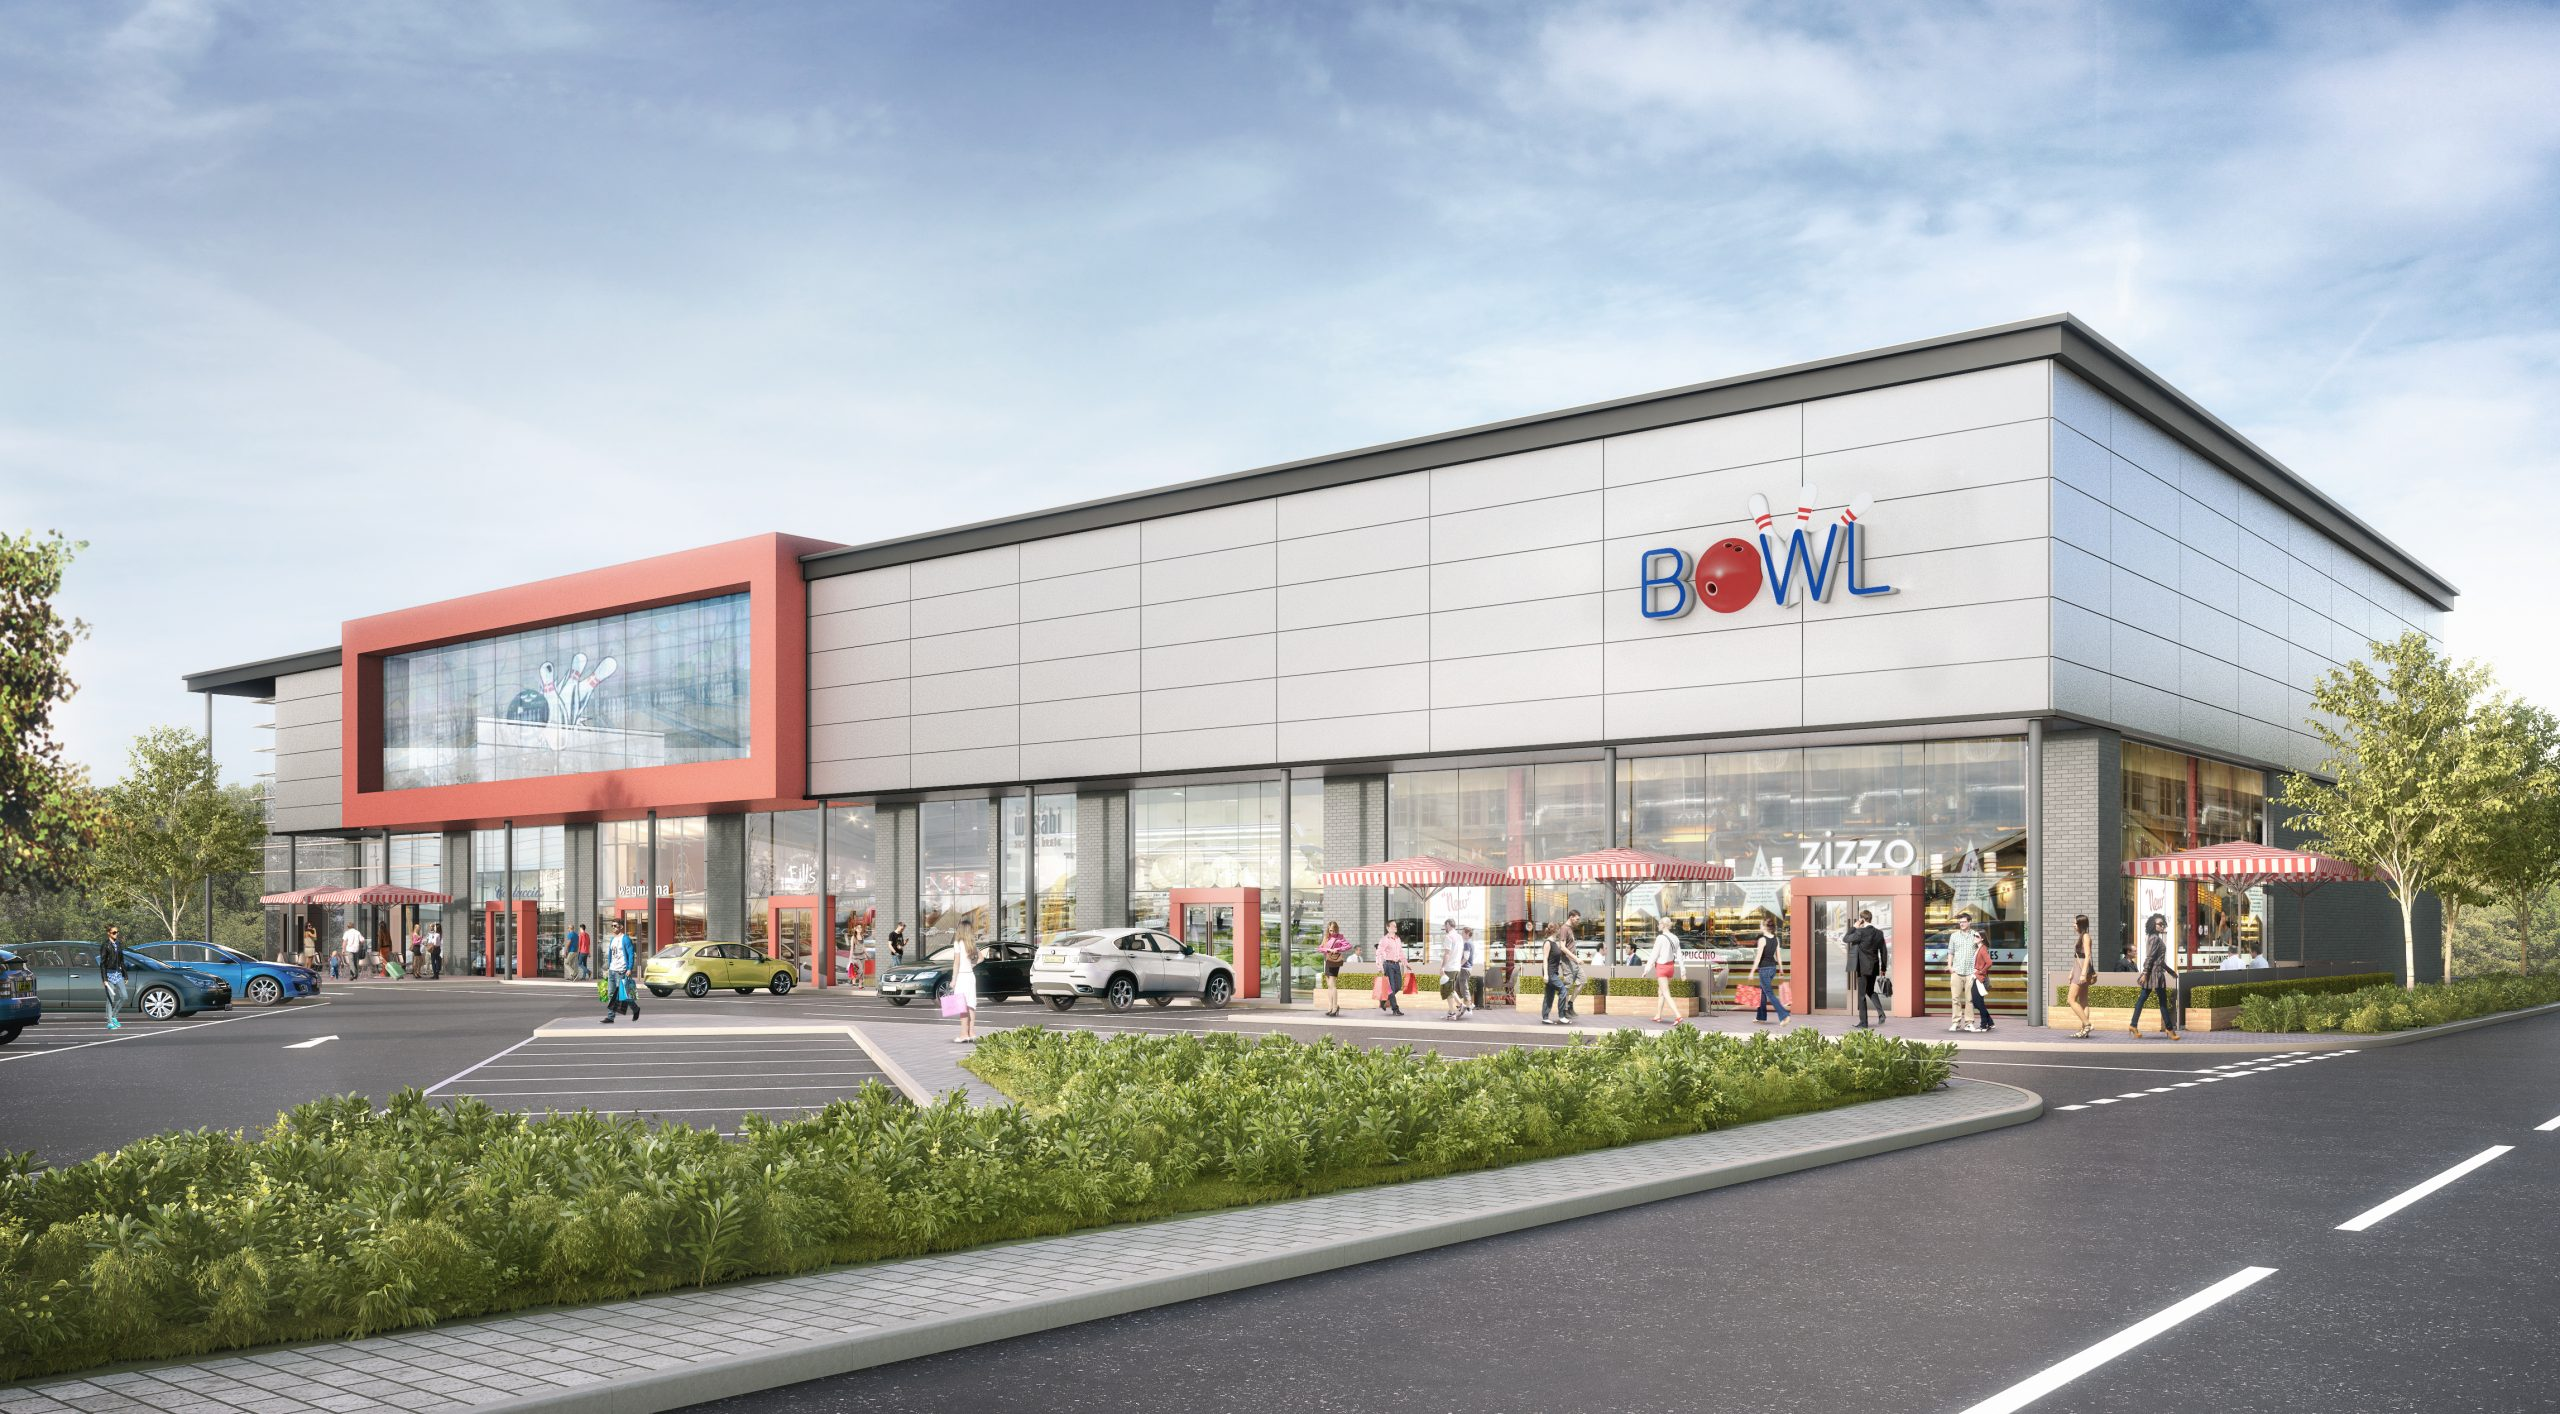 Linkway West Superbowl UK Artists CGI Impression